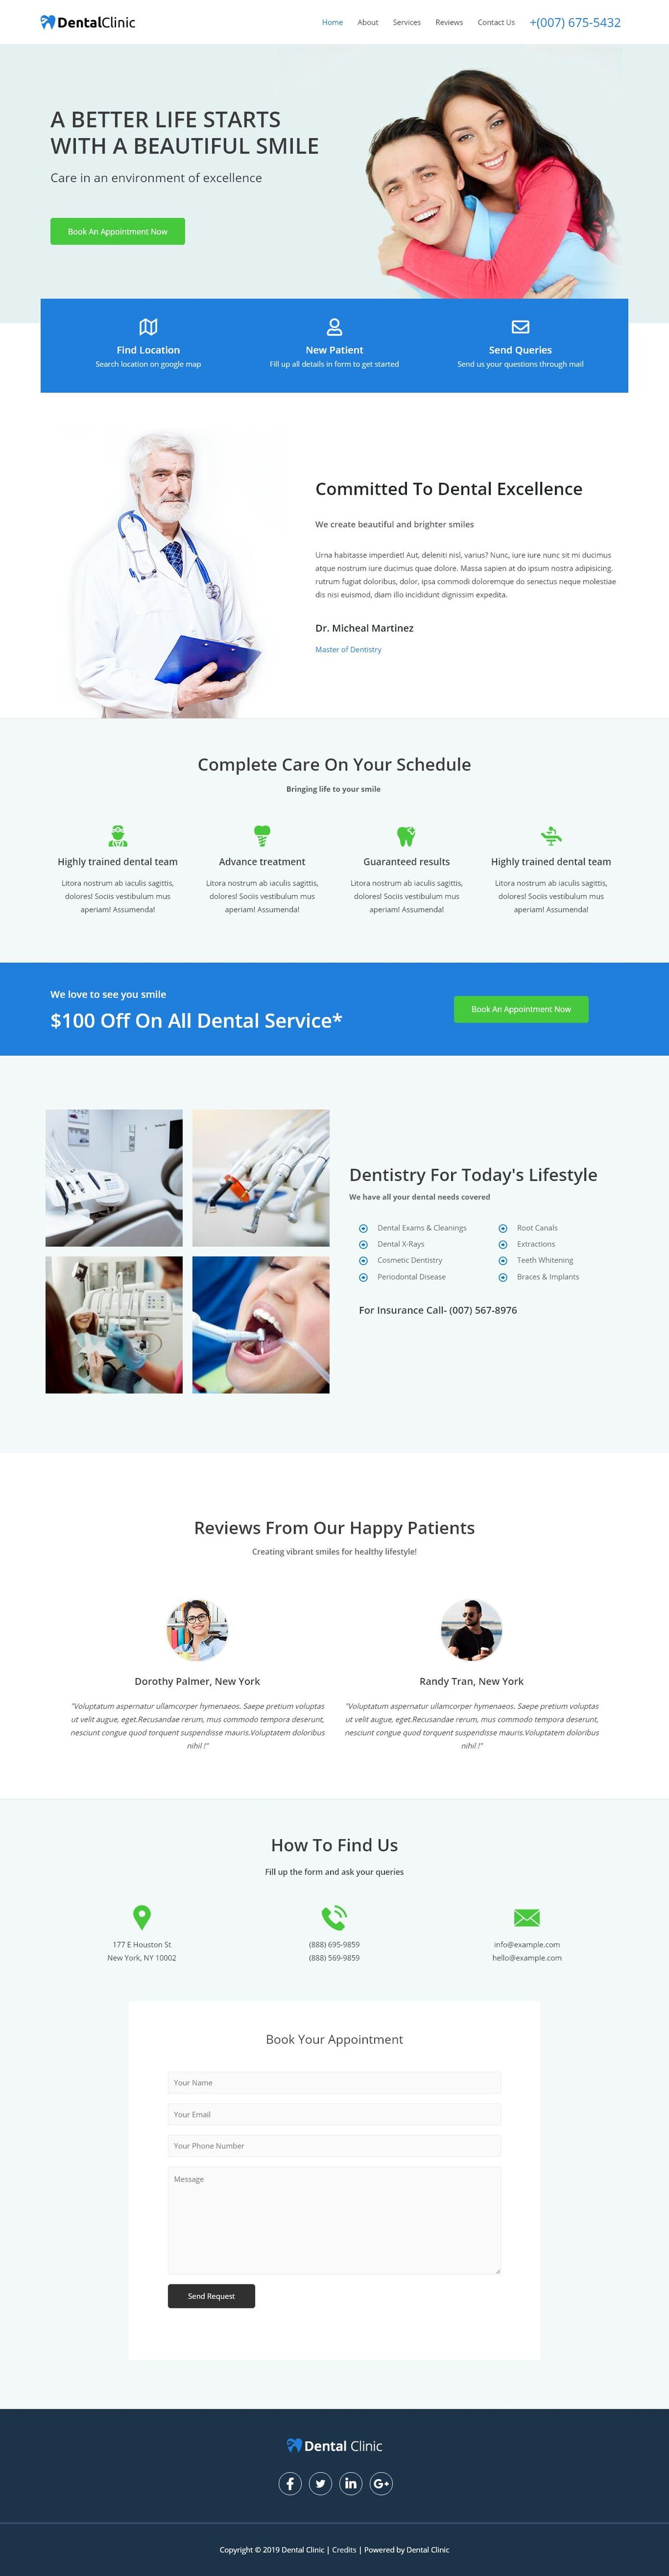 id-17524-dental-clinic-resize.jpg